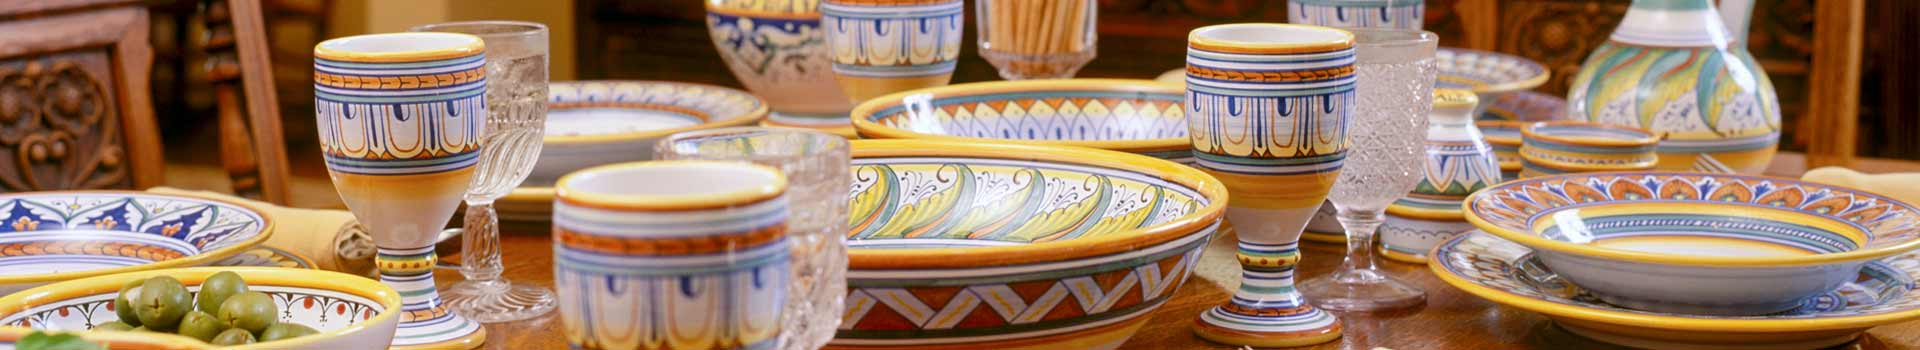 Italian ceramic dishware on the table.